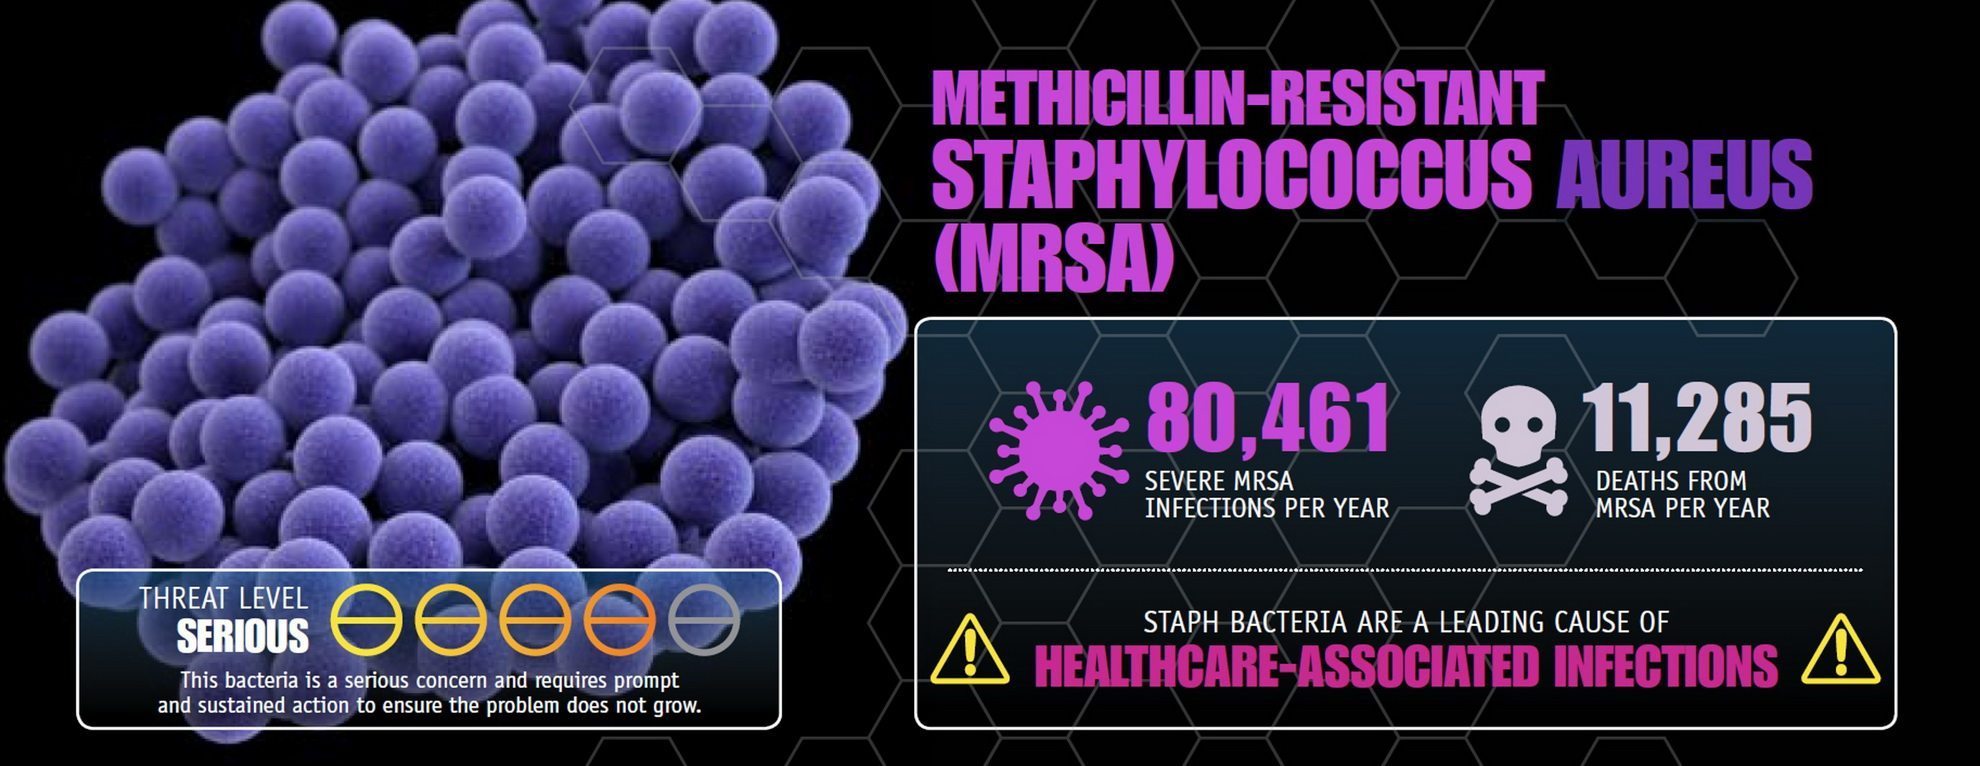 MRSA threat